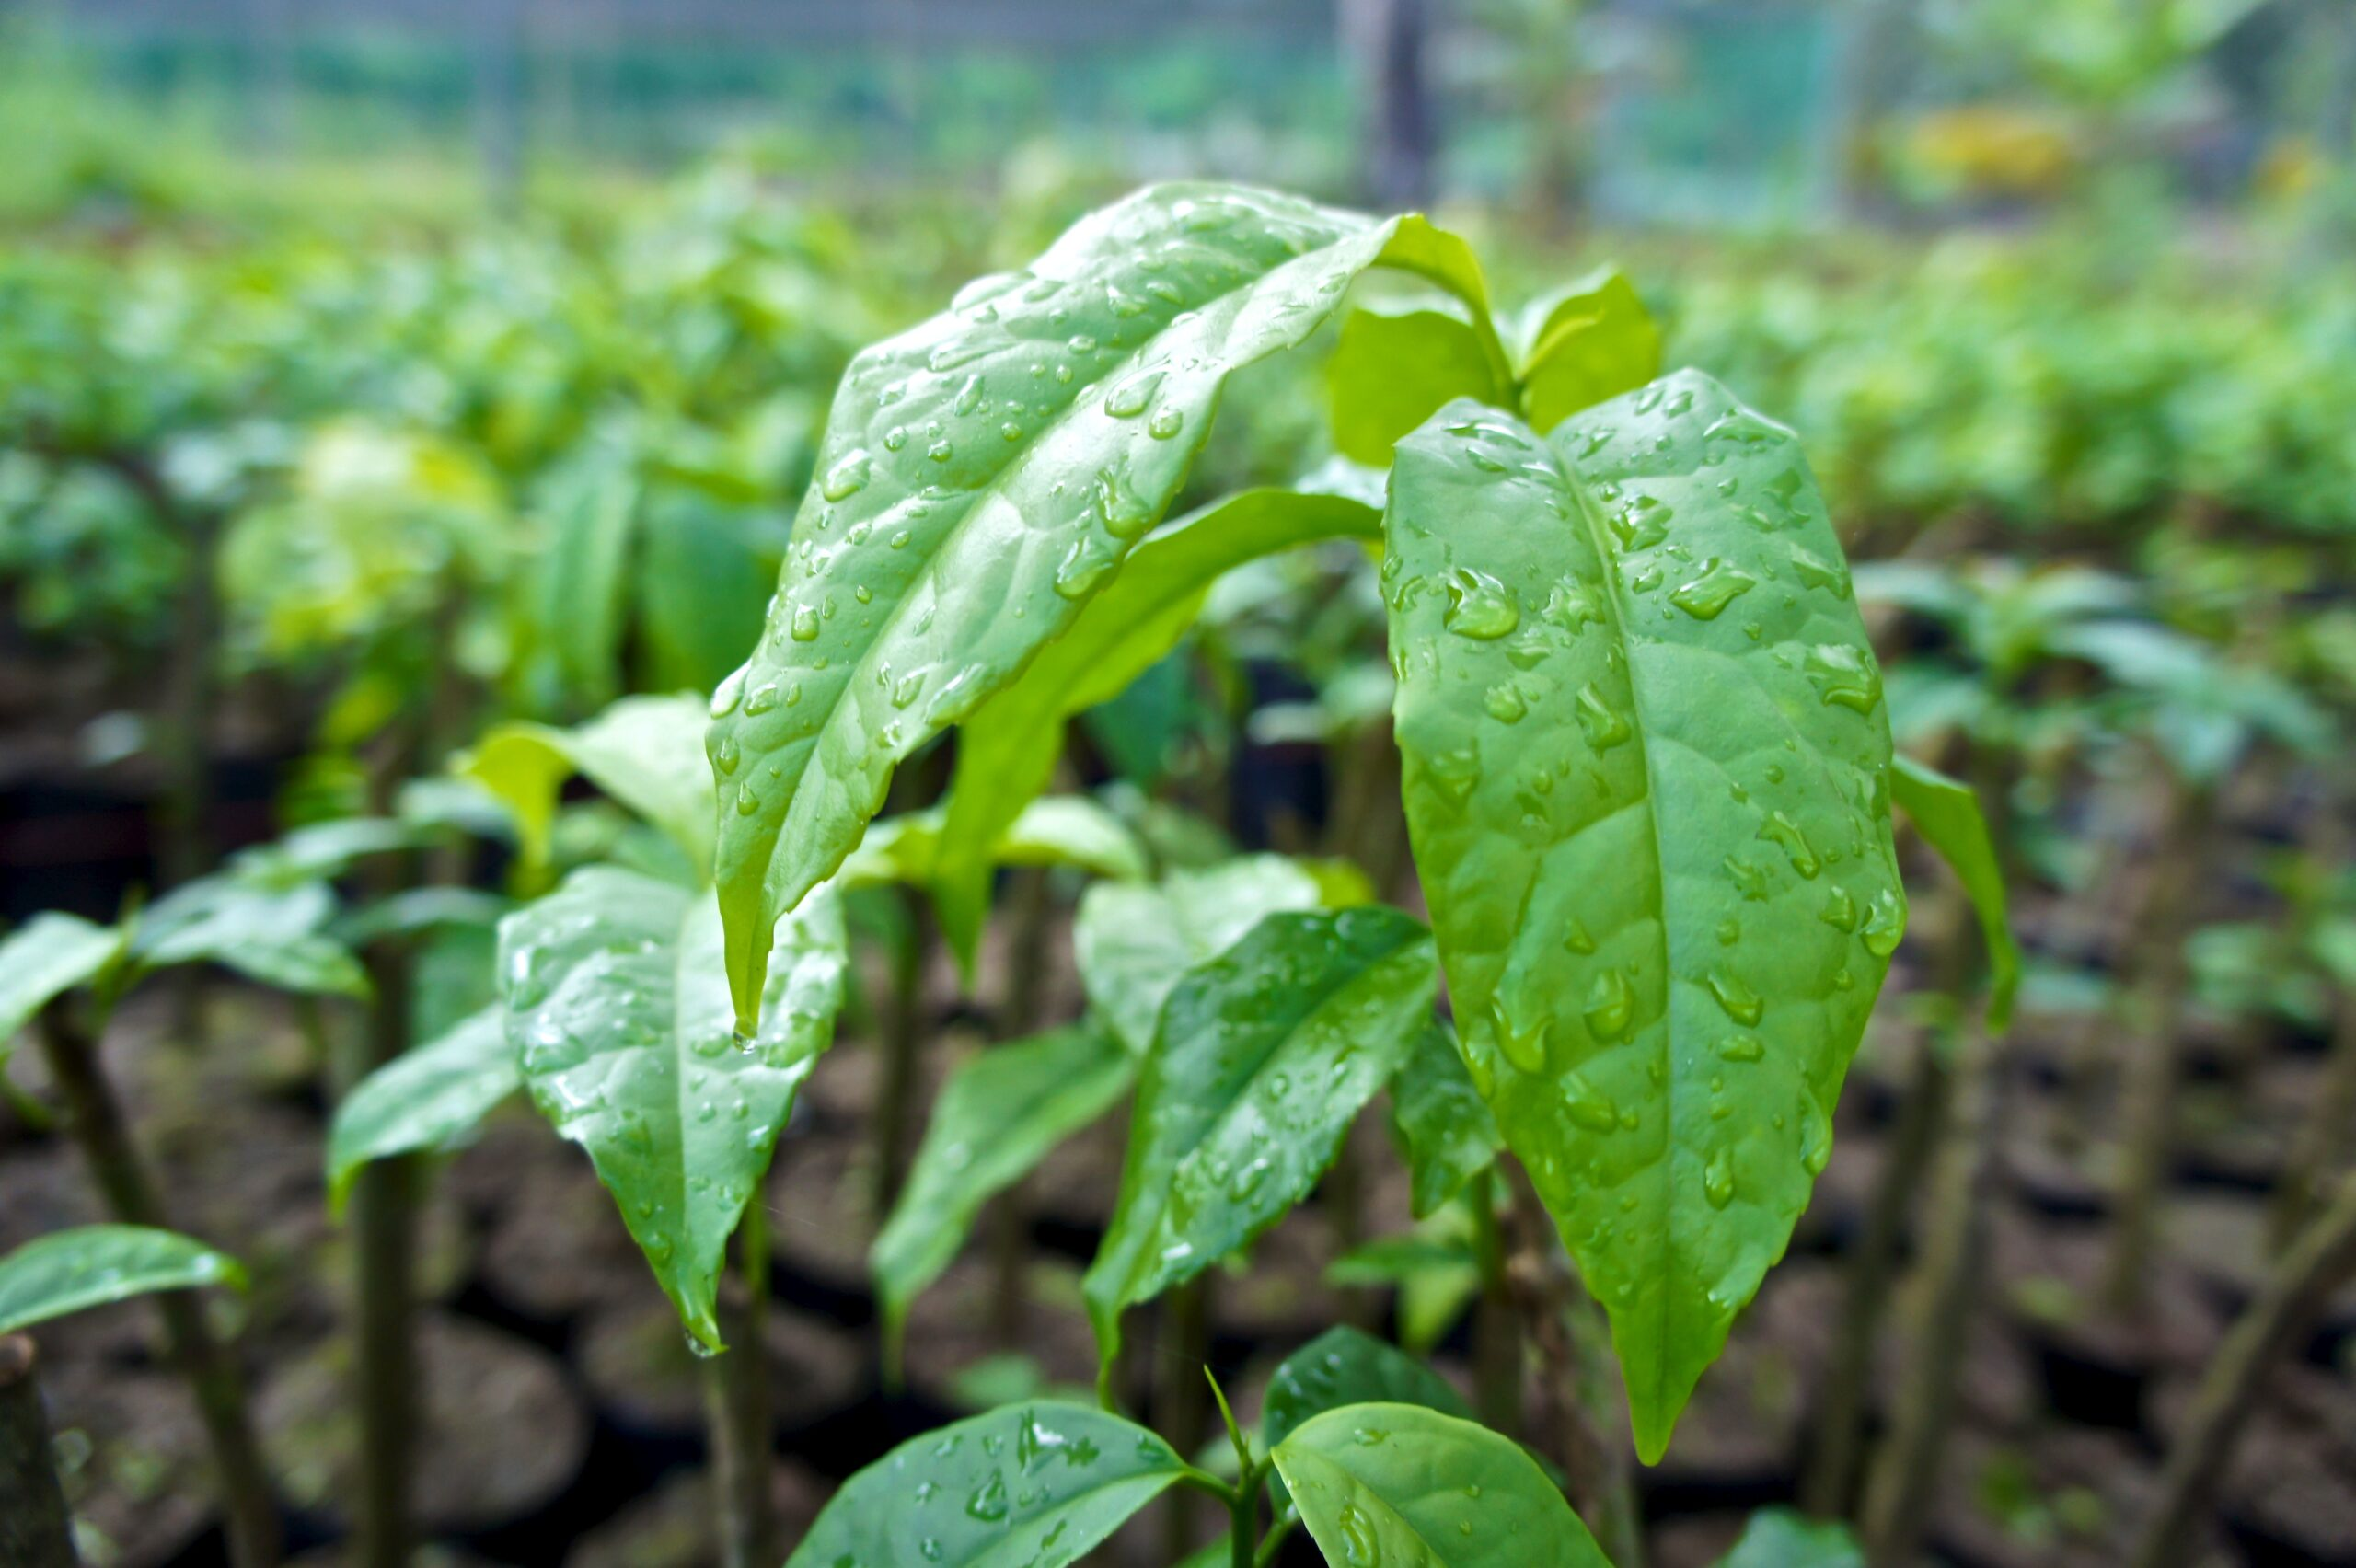 Guayusa before being transplanted to their final destination. © Applied Food Sciences, Inc.